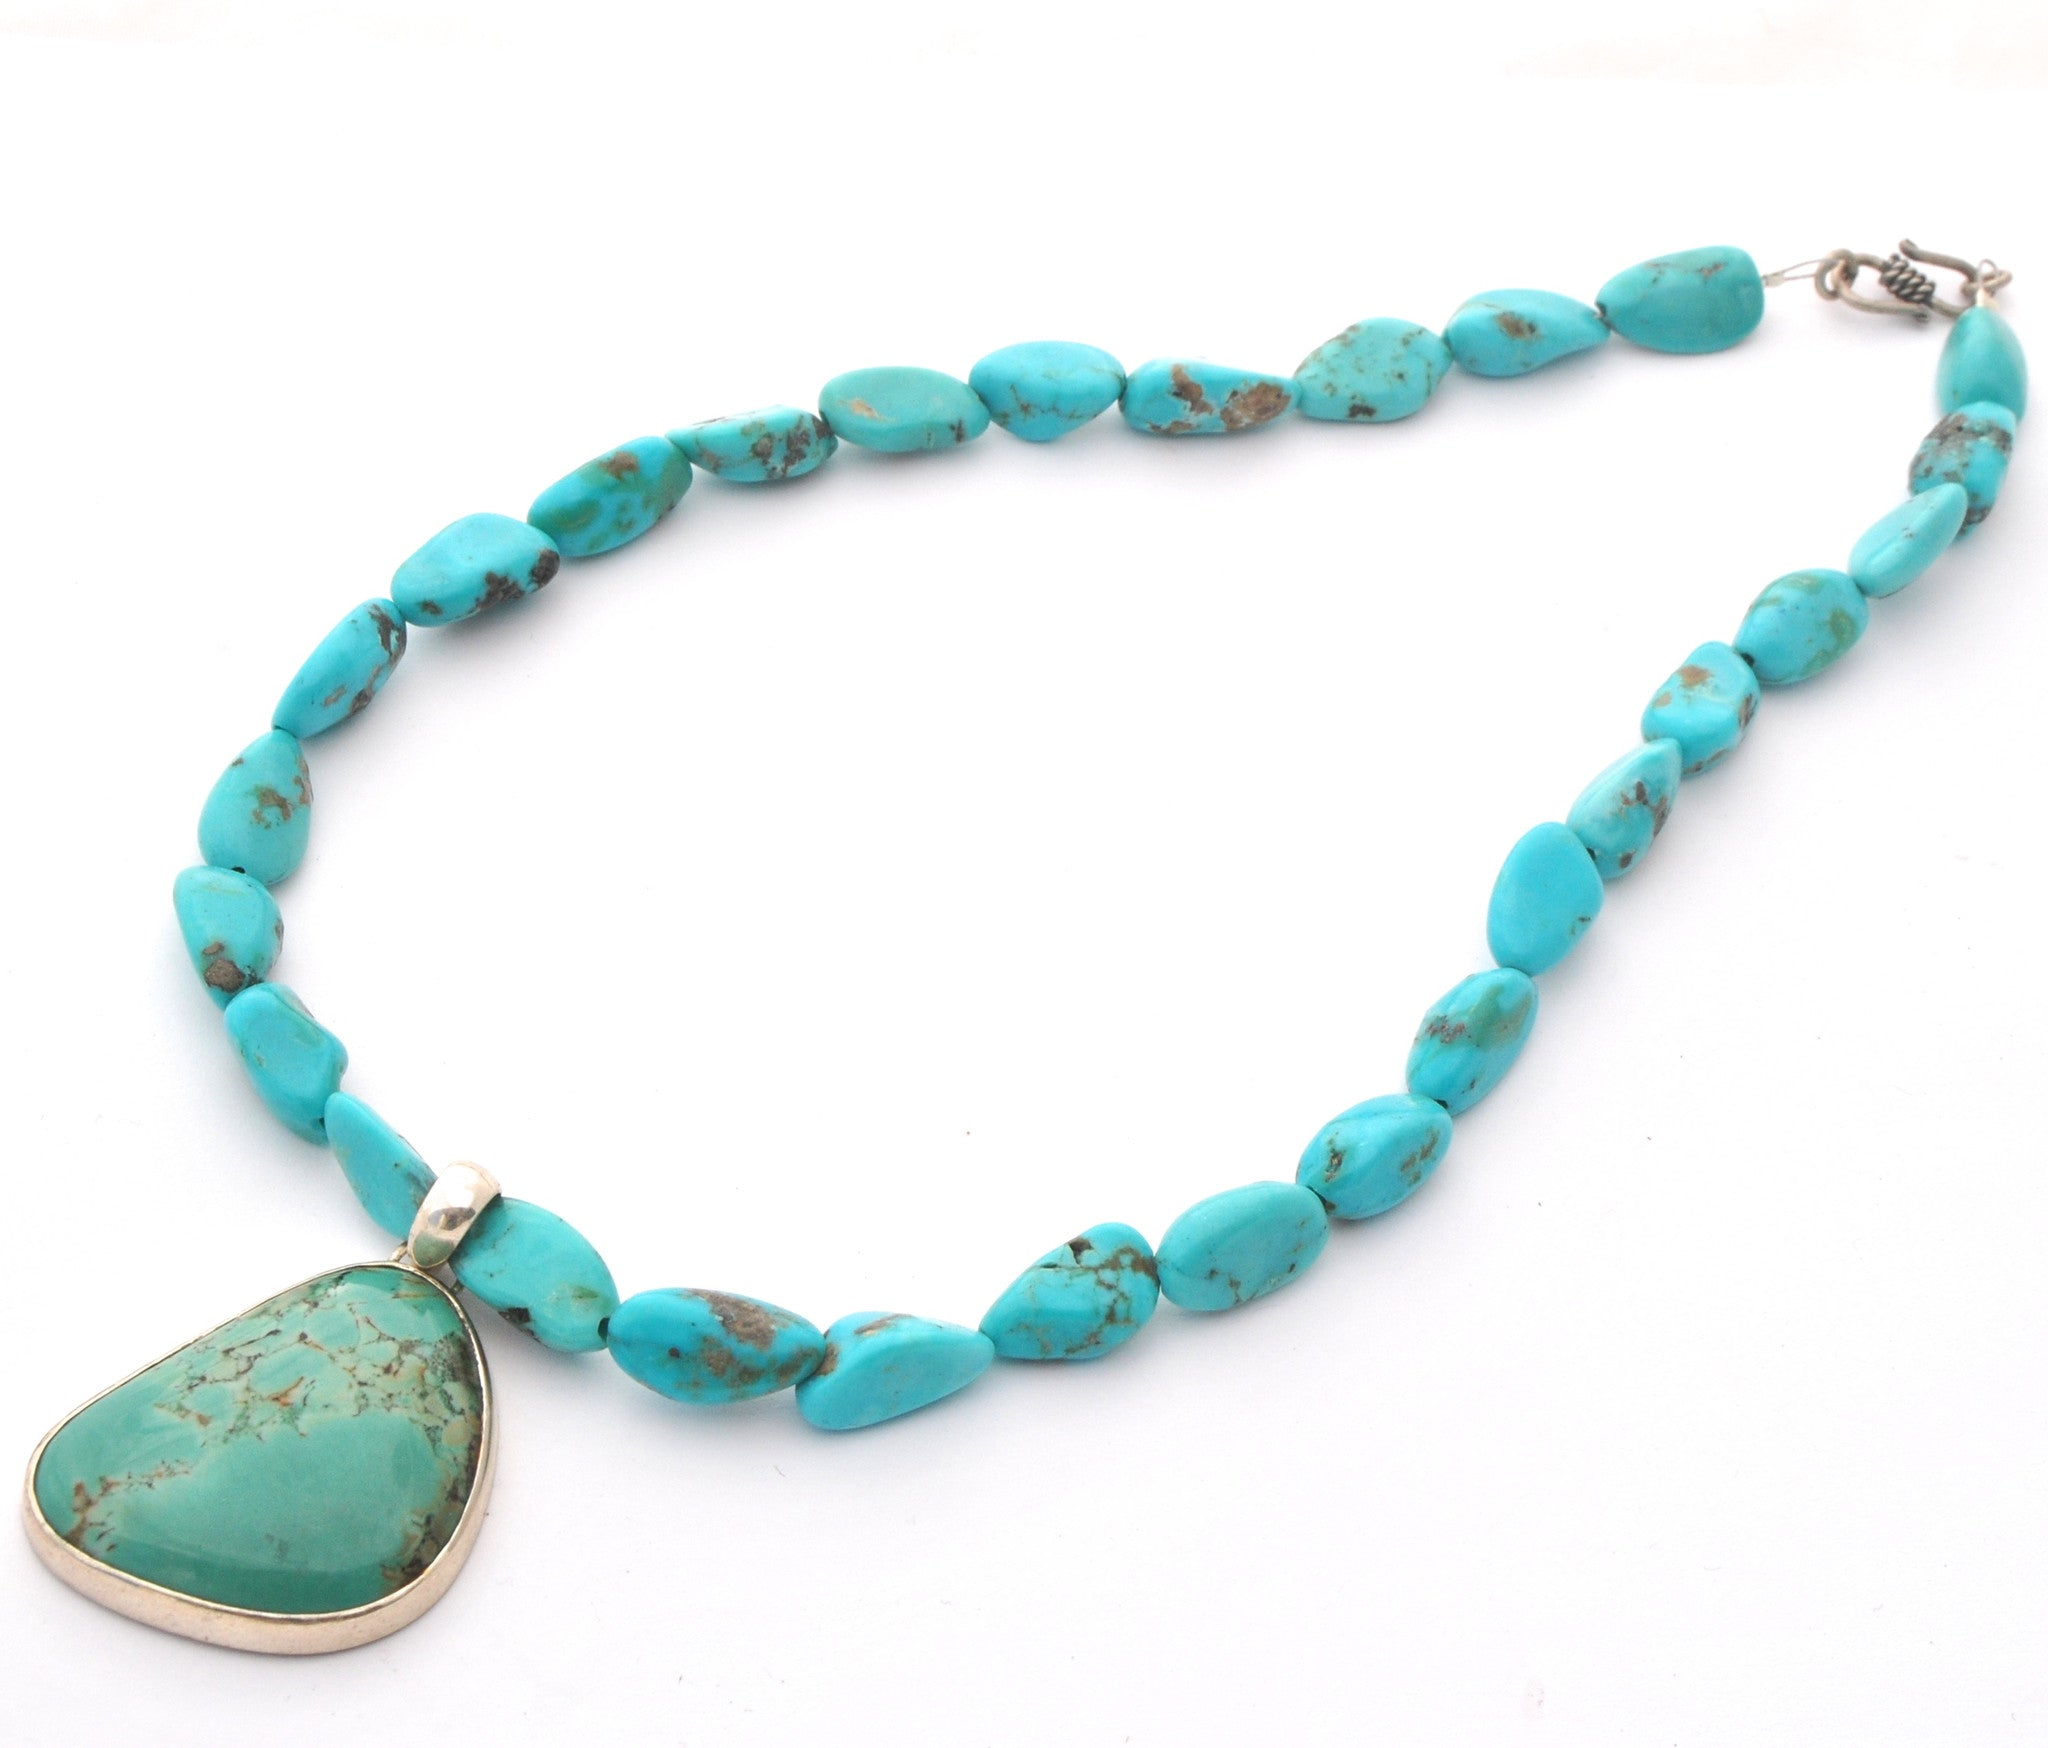 Turquoise, Stone of the week.